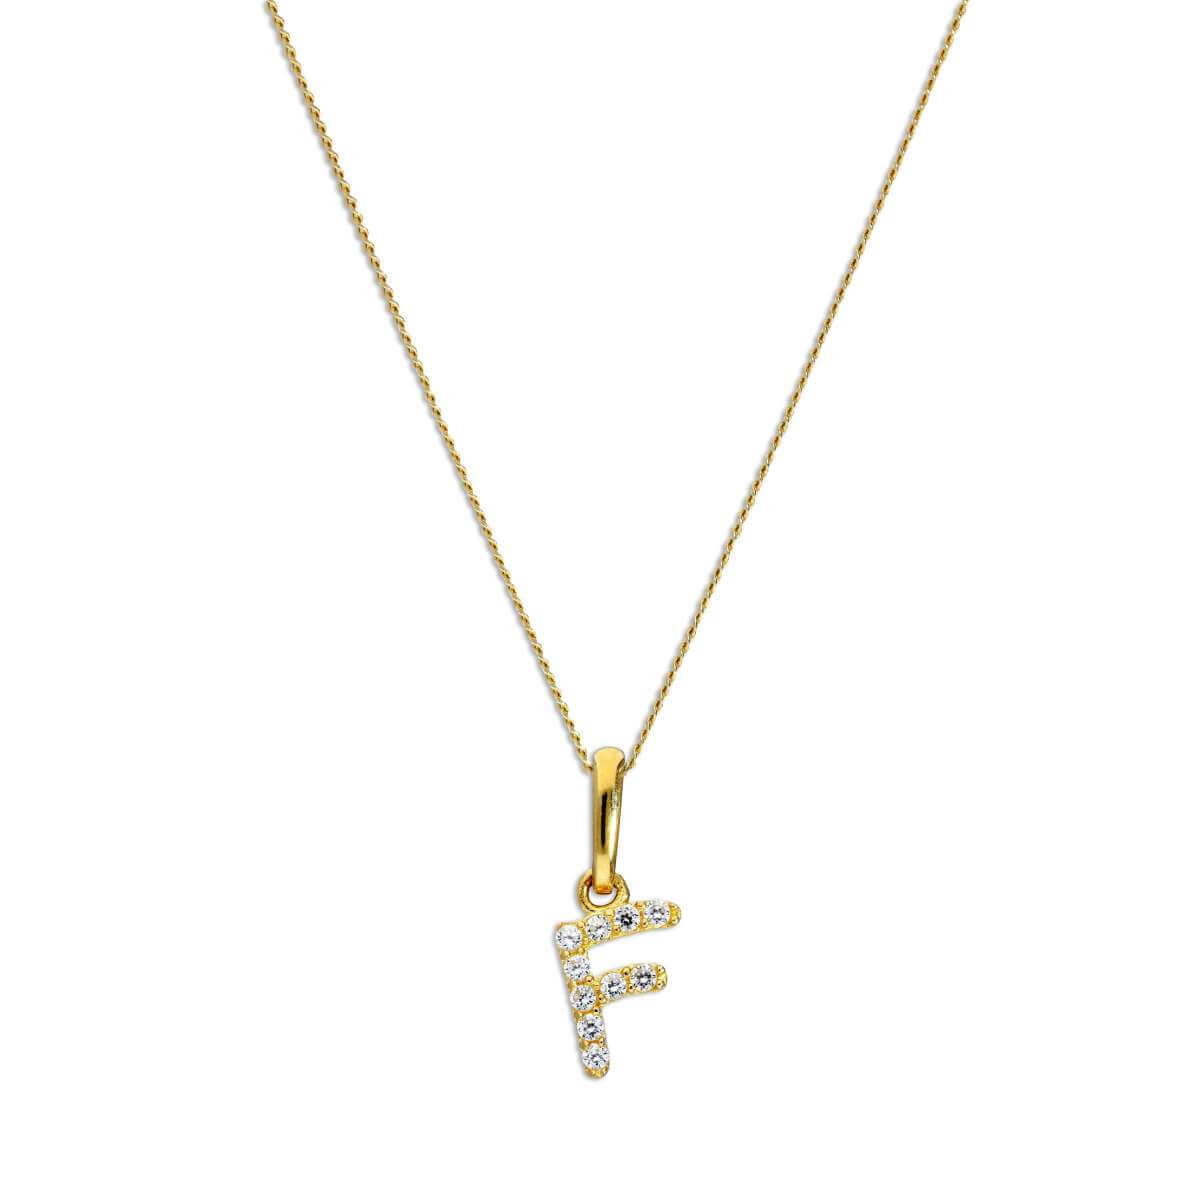 9ct Gold & Clear CZ Crystal Script Alphabet Letter F Necklace 16 - 20 Inches